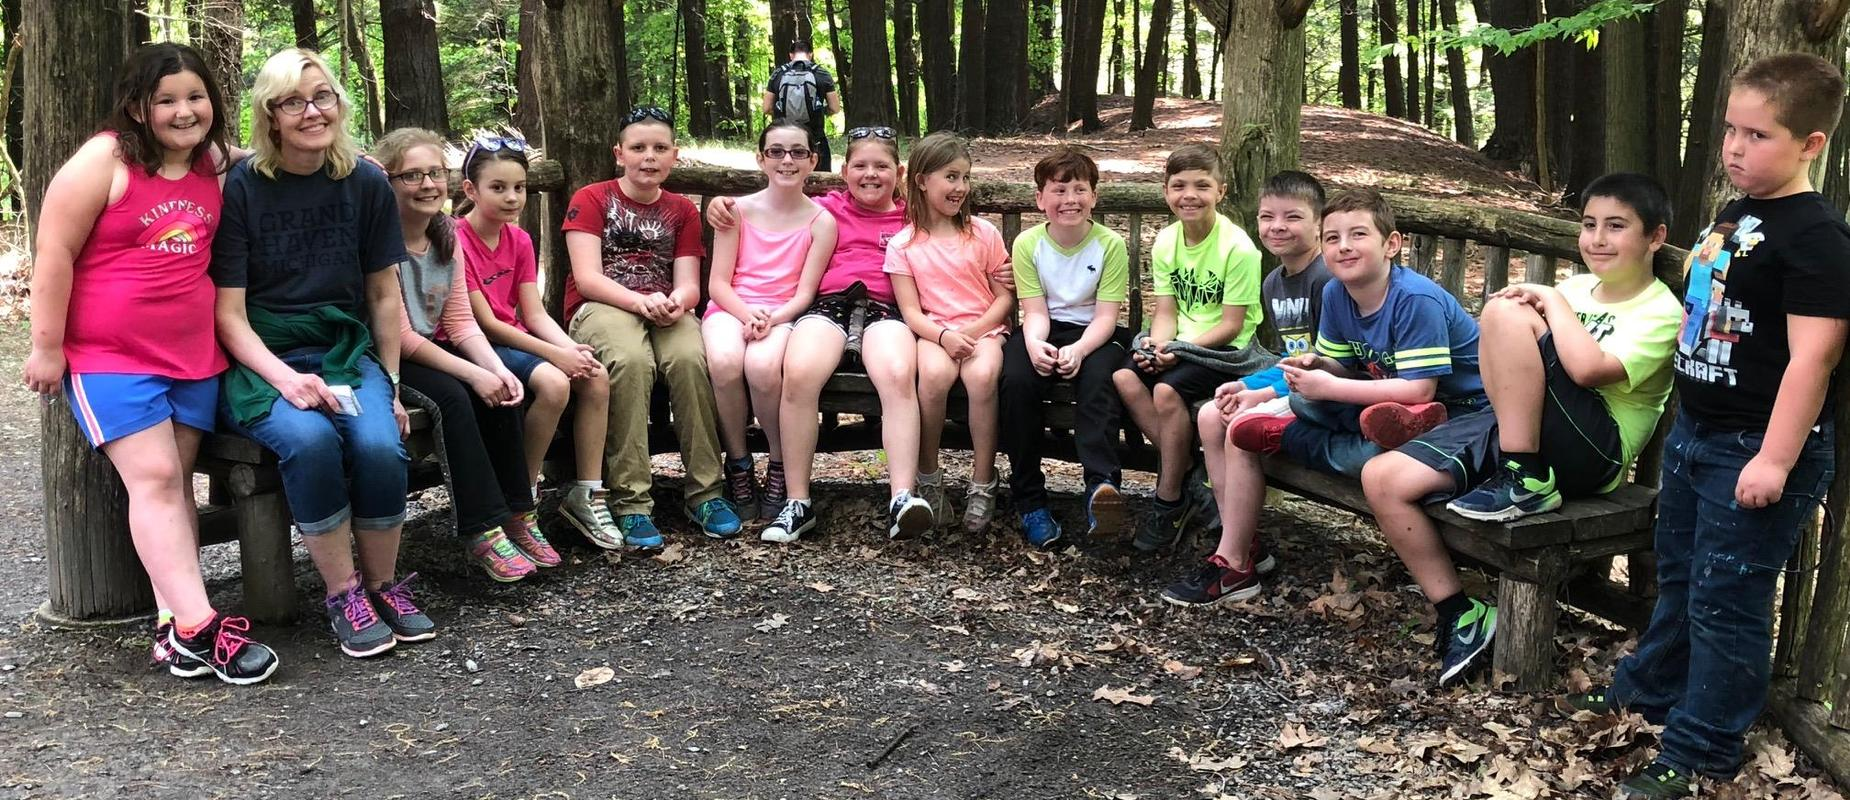 3rd graders visit Letchworth Park on WIlliam Letchworth's birthday.